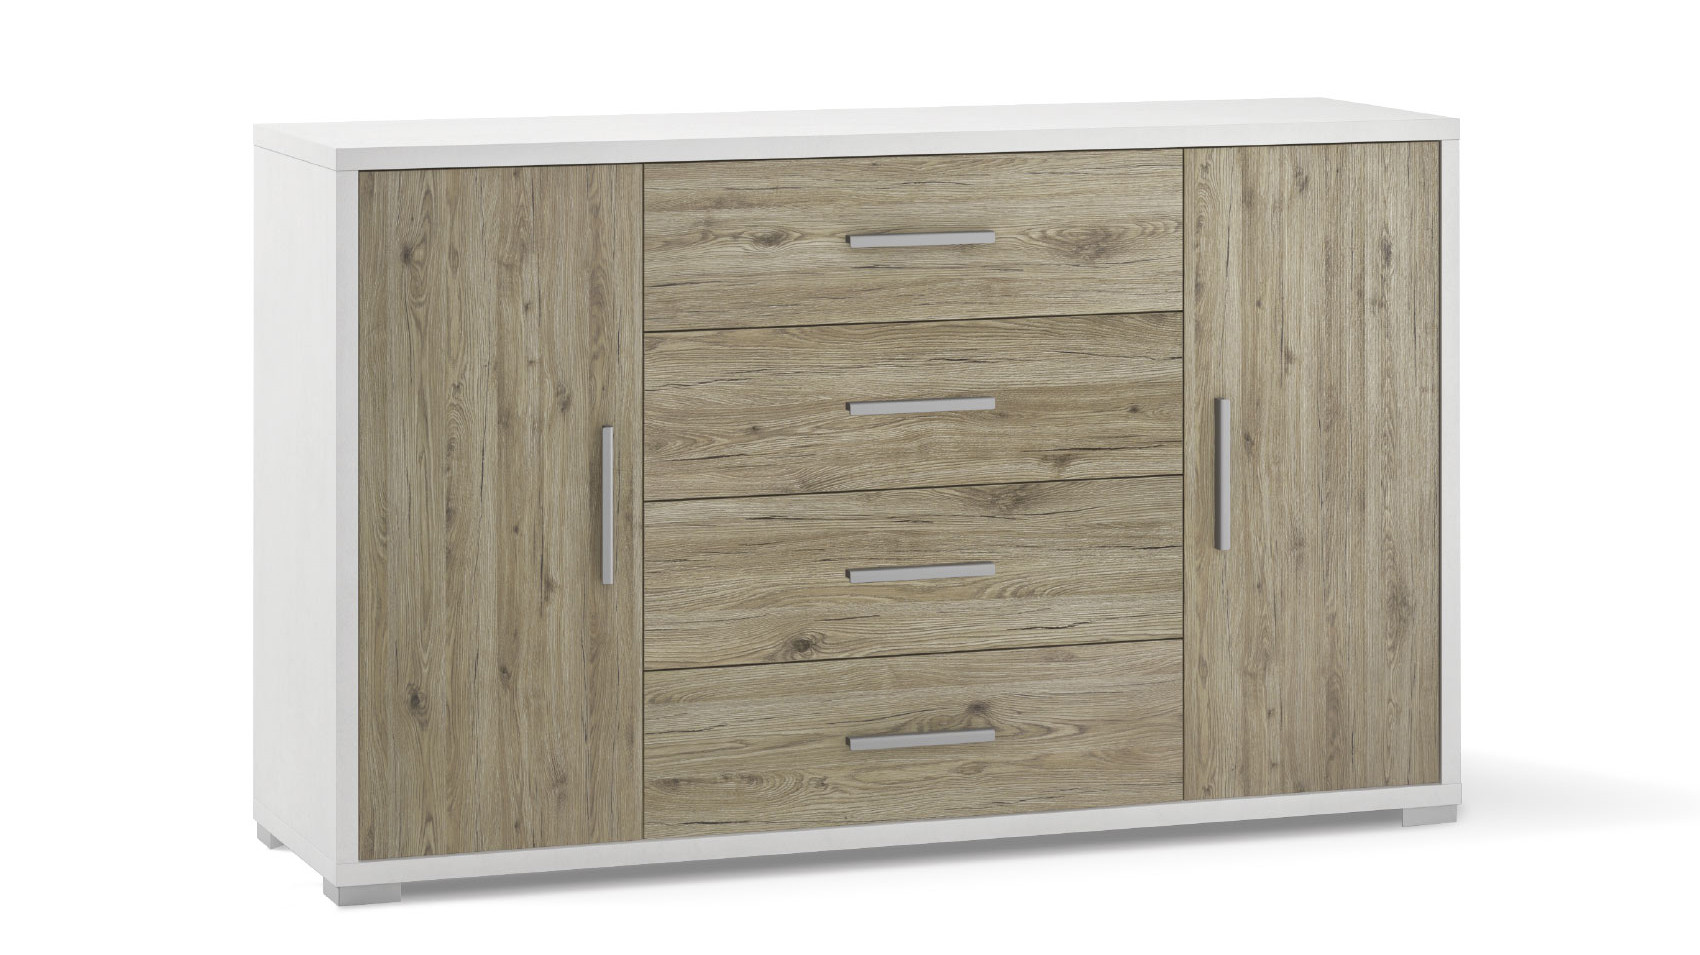 2-door 4-drawer unit - Db875 - Doublé collection